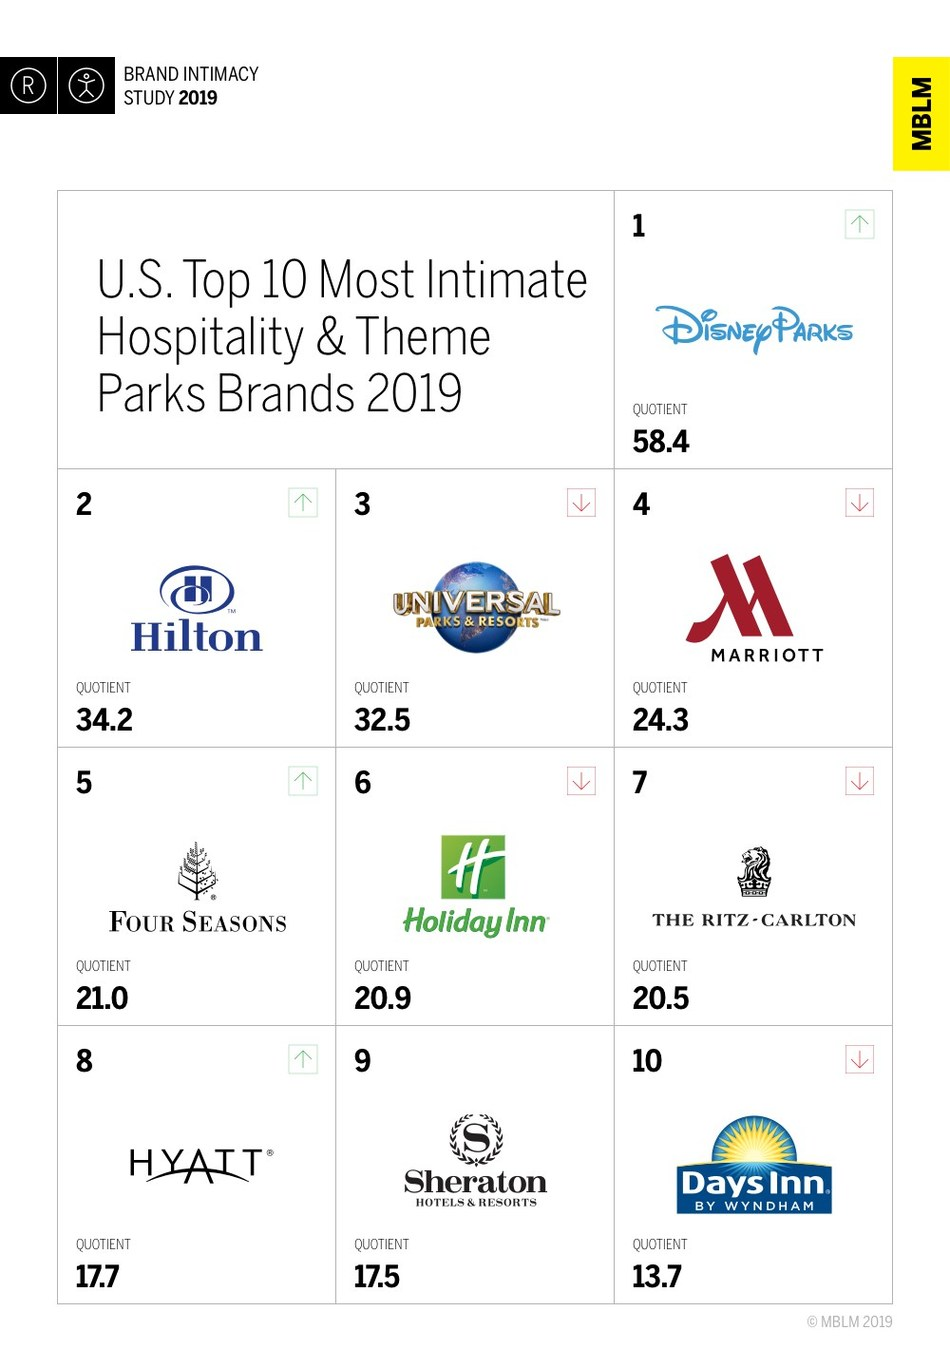 U.S. Top 10 Most Intimate Hospitality & Theme Parks Brands 2019